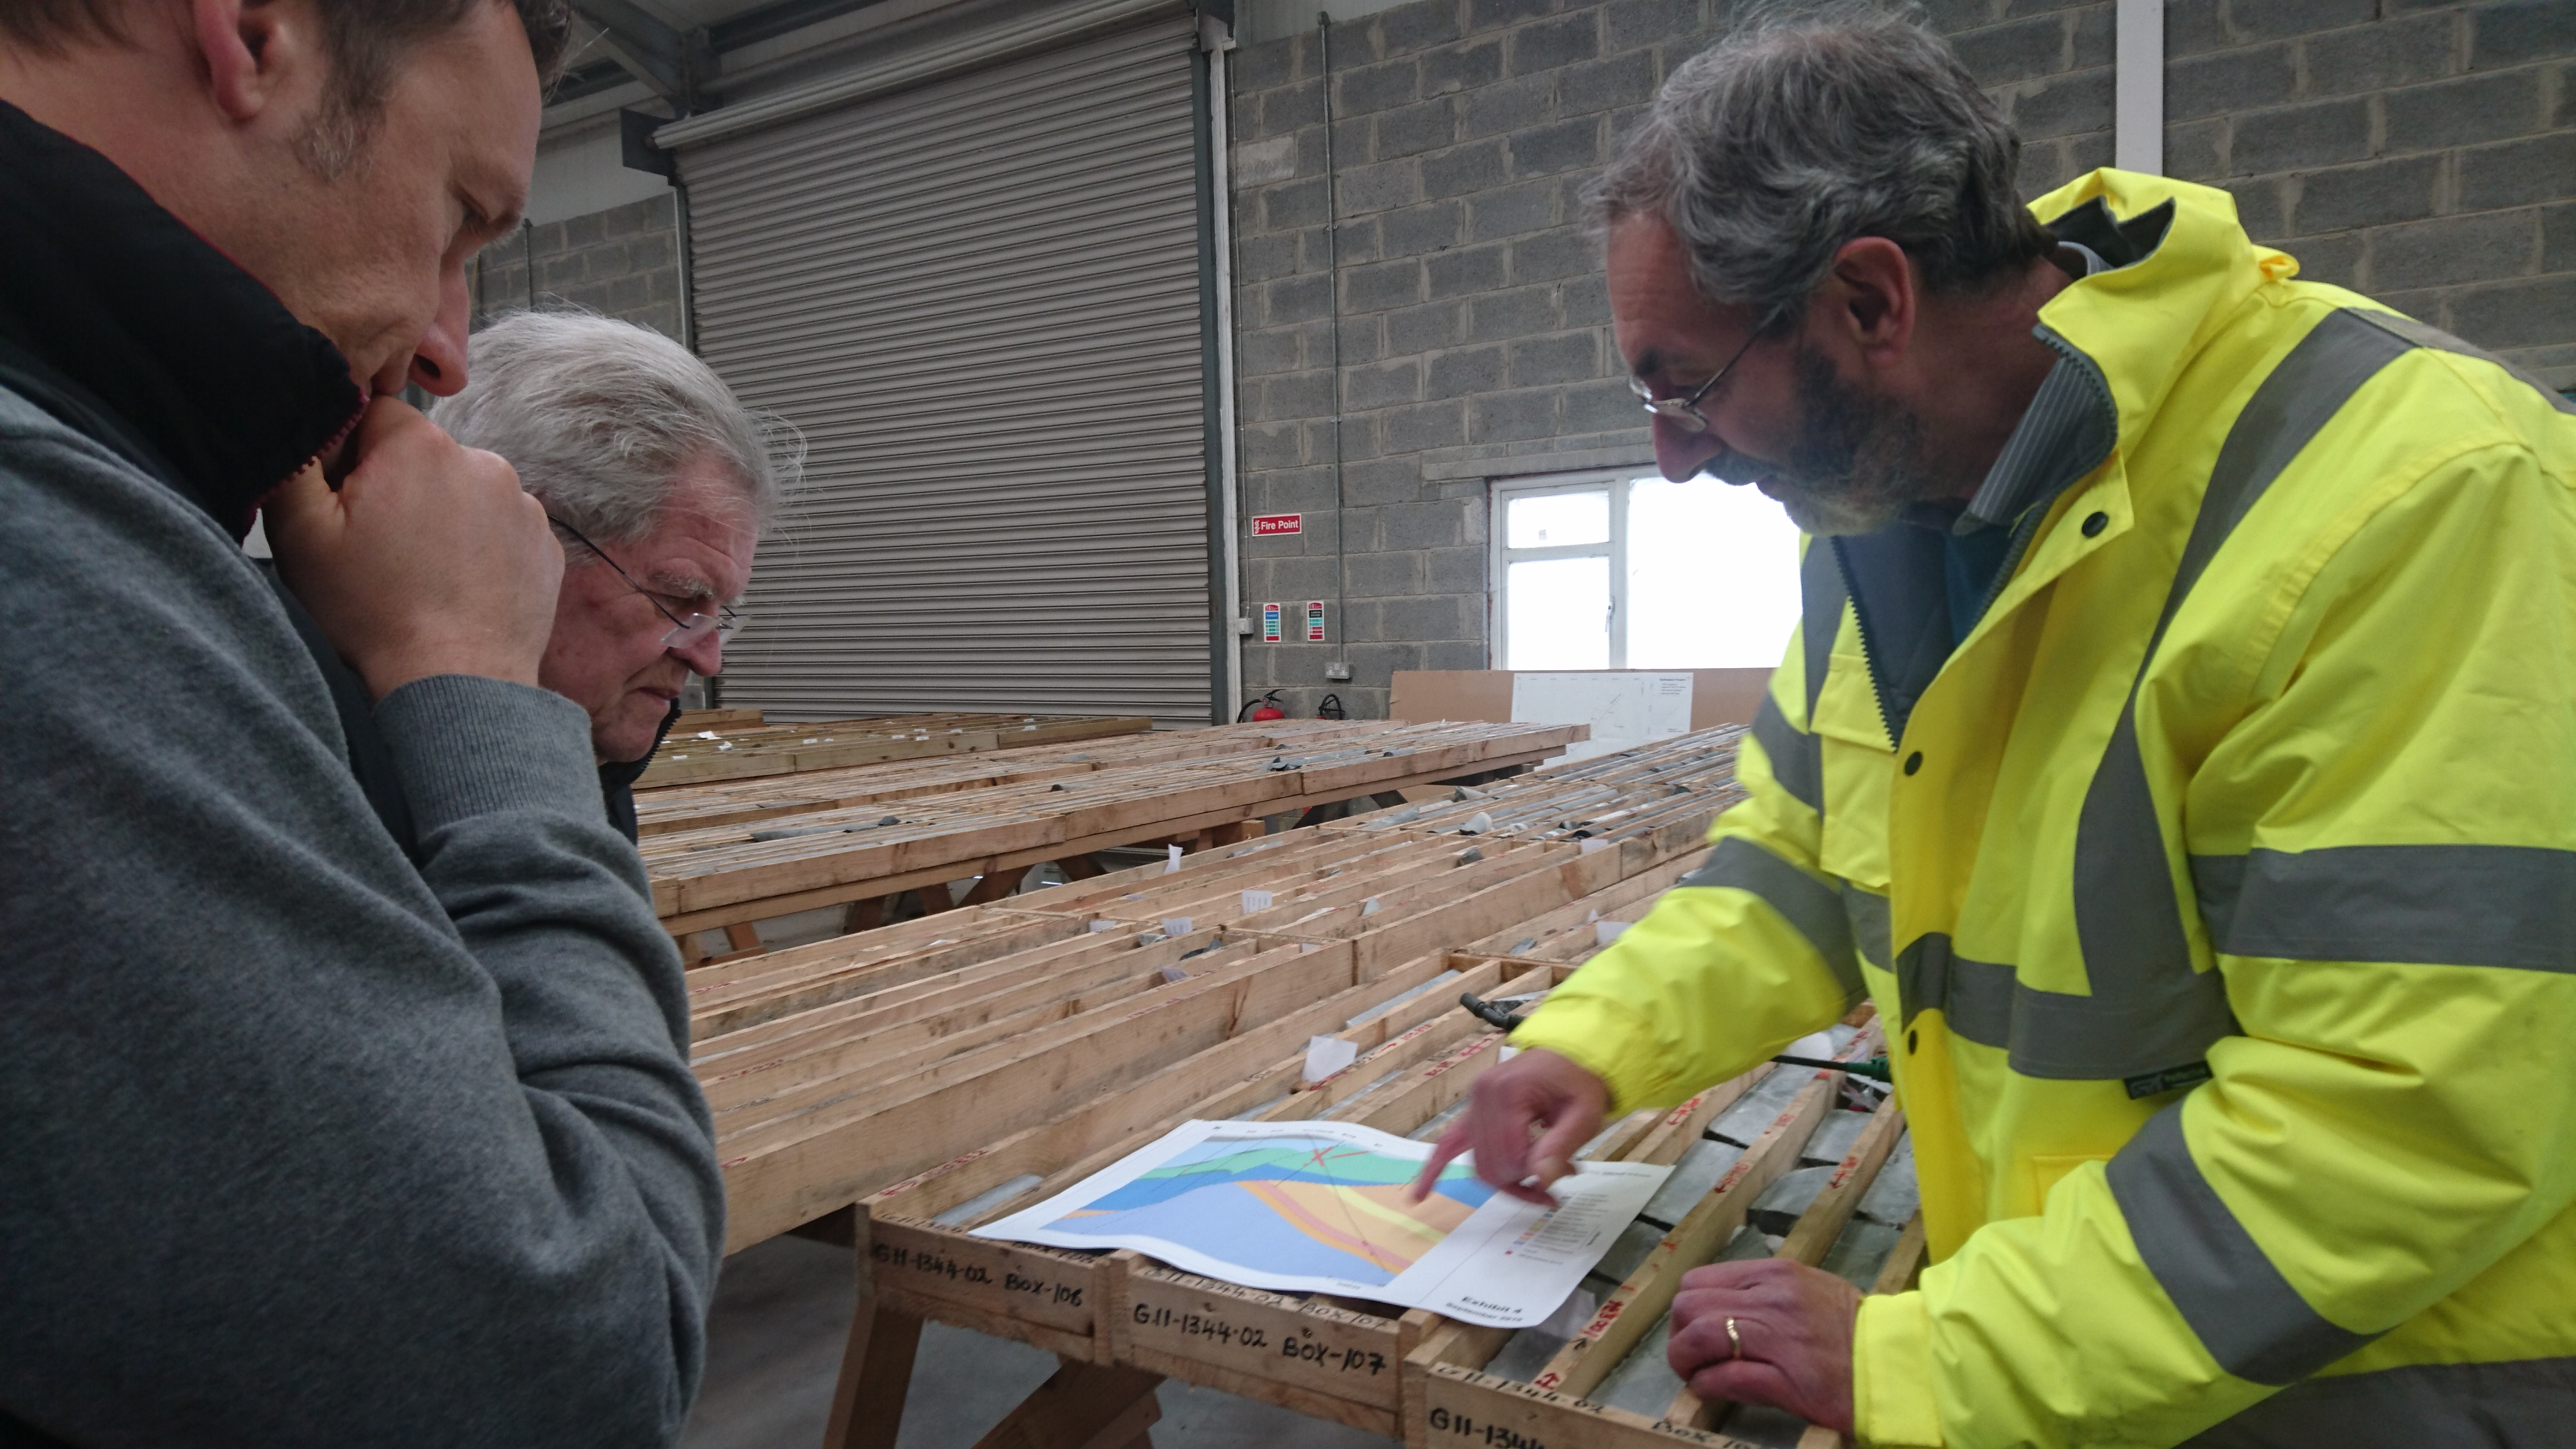 Staff (right) at Group Eleven's core shack discusses Ballinalack's geology with company CEO Bart Jaworski (left) and writer Bob Moriarty (center). Photo by Richard Quarisa.